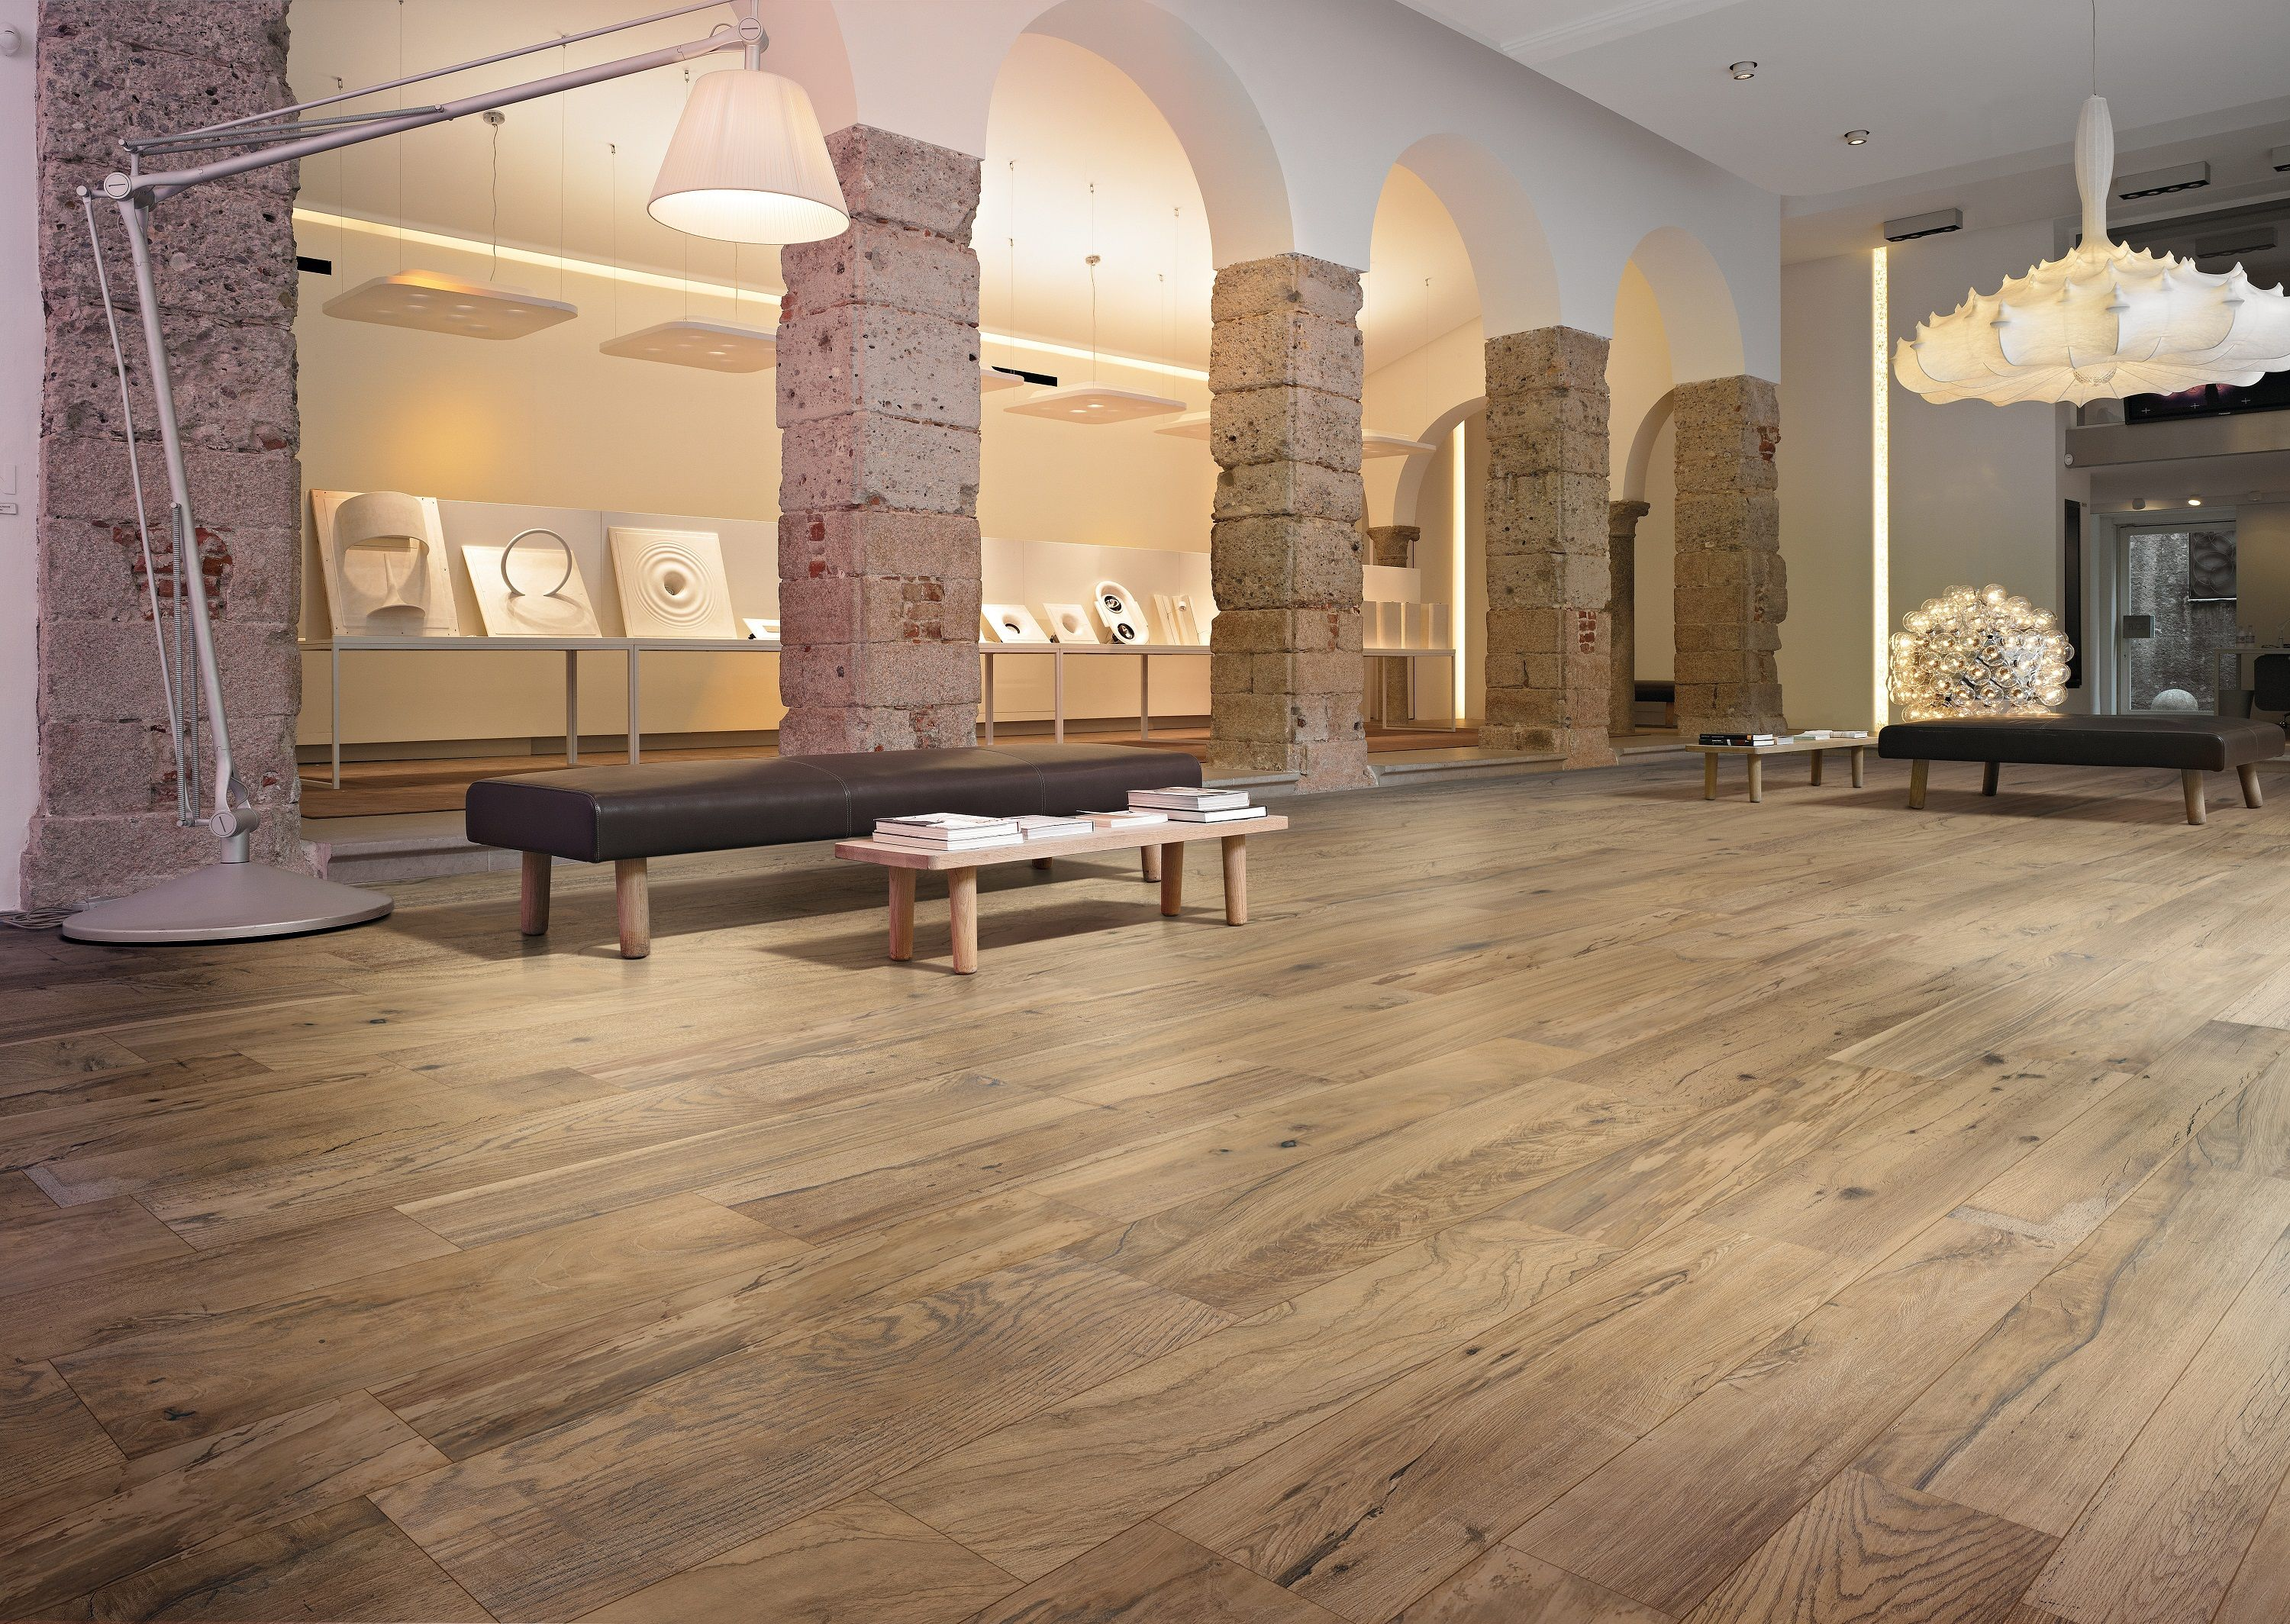 Sienna reclaimed wood beige porcelain tile in 9x36 and 6x36 pattern builddirect porcelain tile italian porcelain tiles vintage woodgrain series sunlight min 174 sq ft too expensive dailygadgetfo Gallery